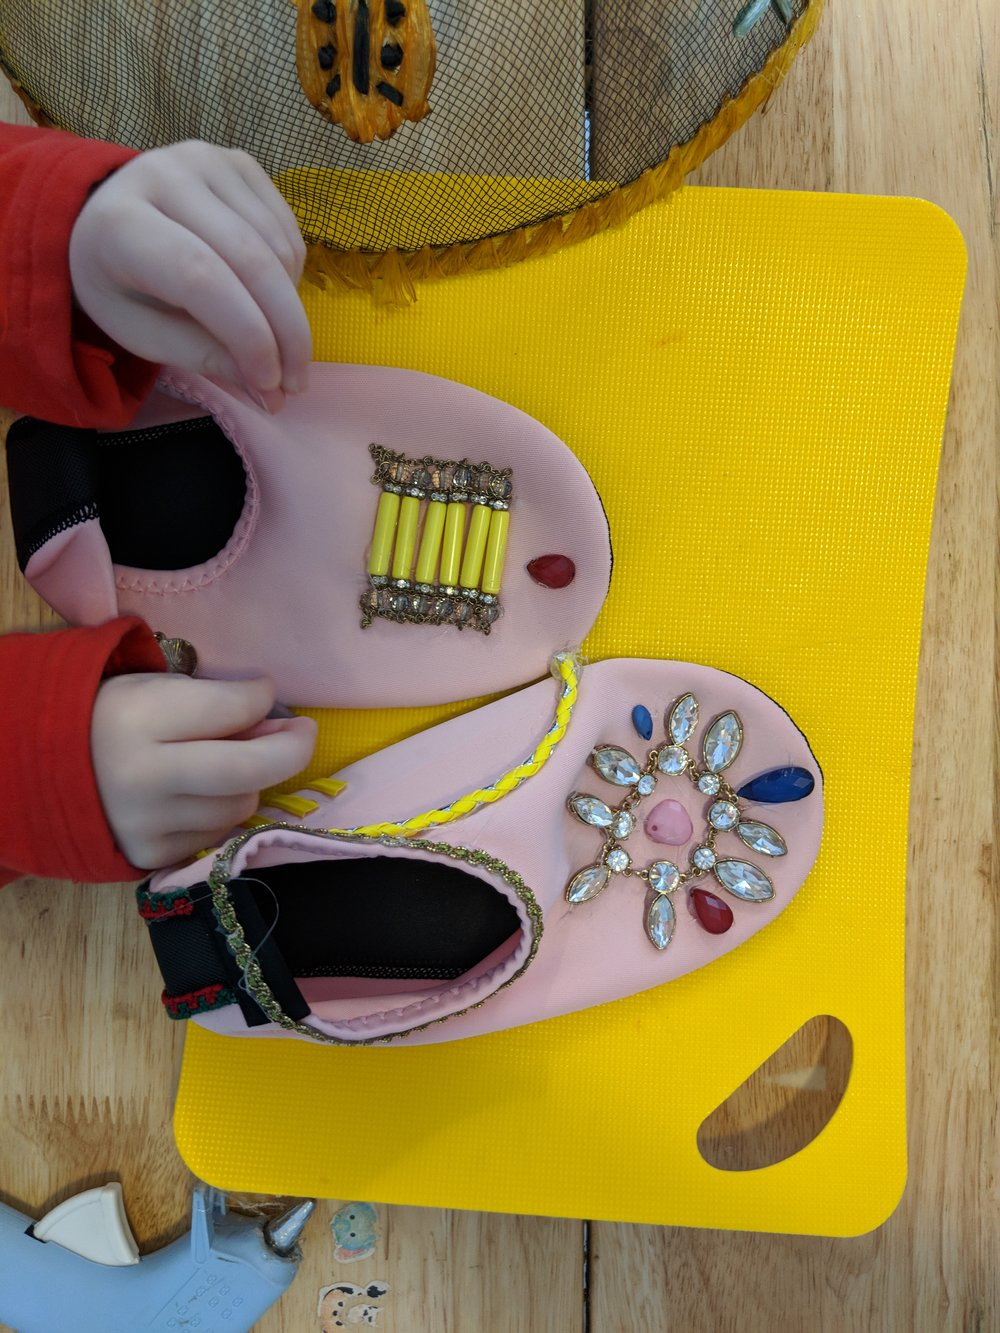 CRAFTLEISURE - FOR THE LITTLES...